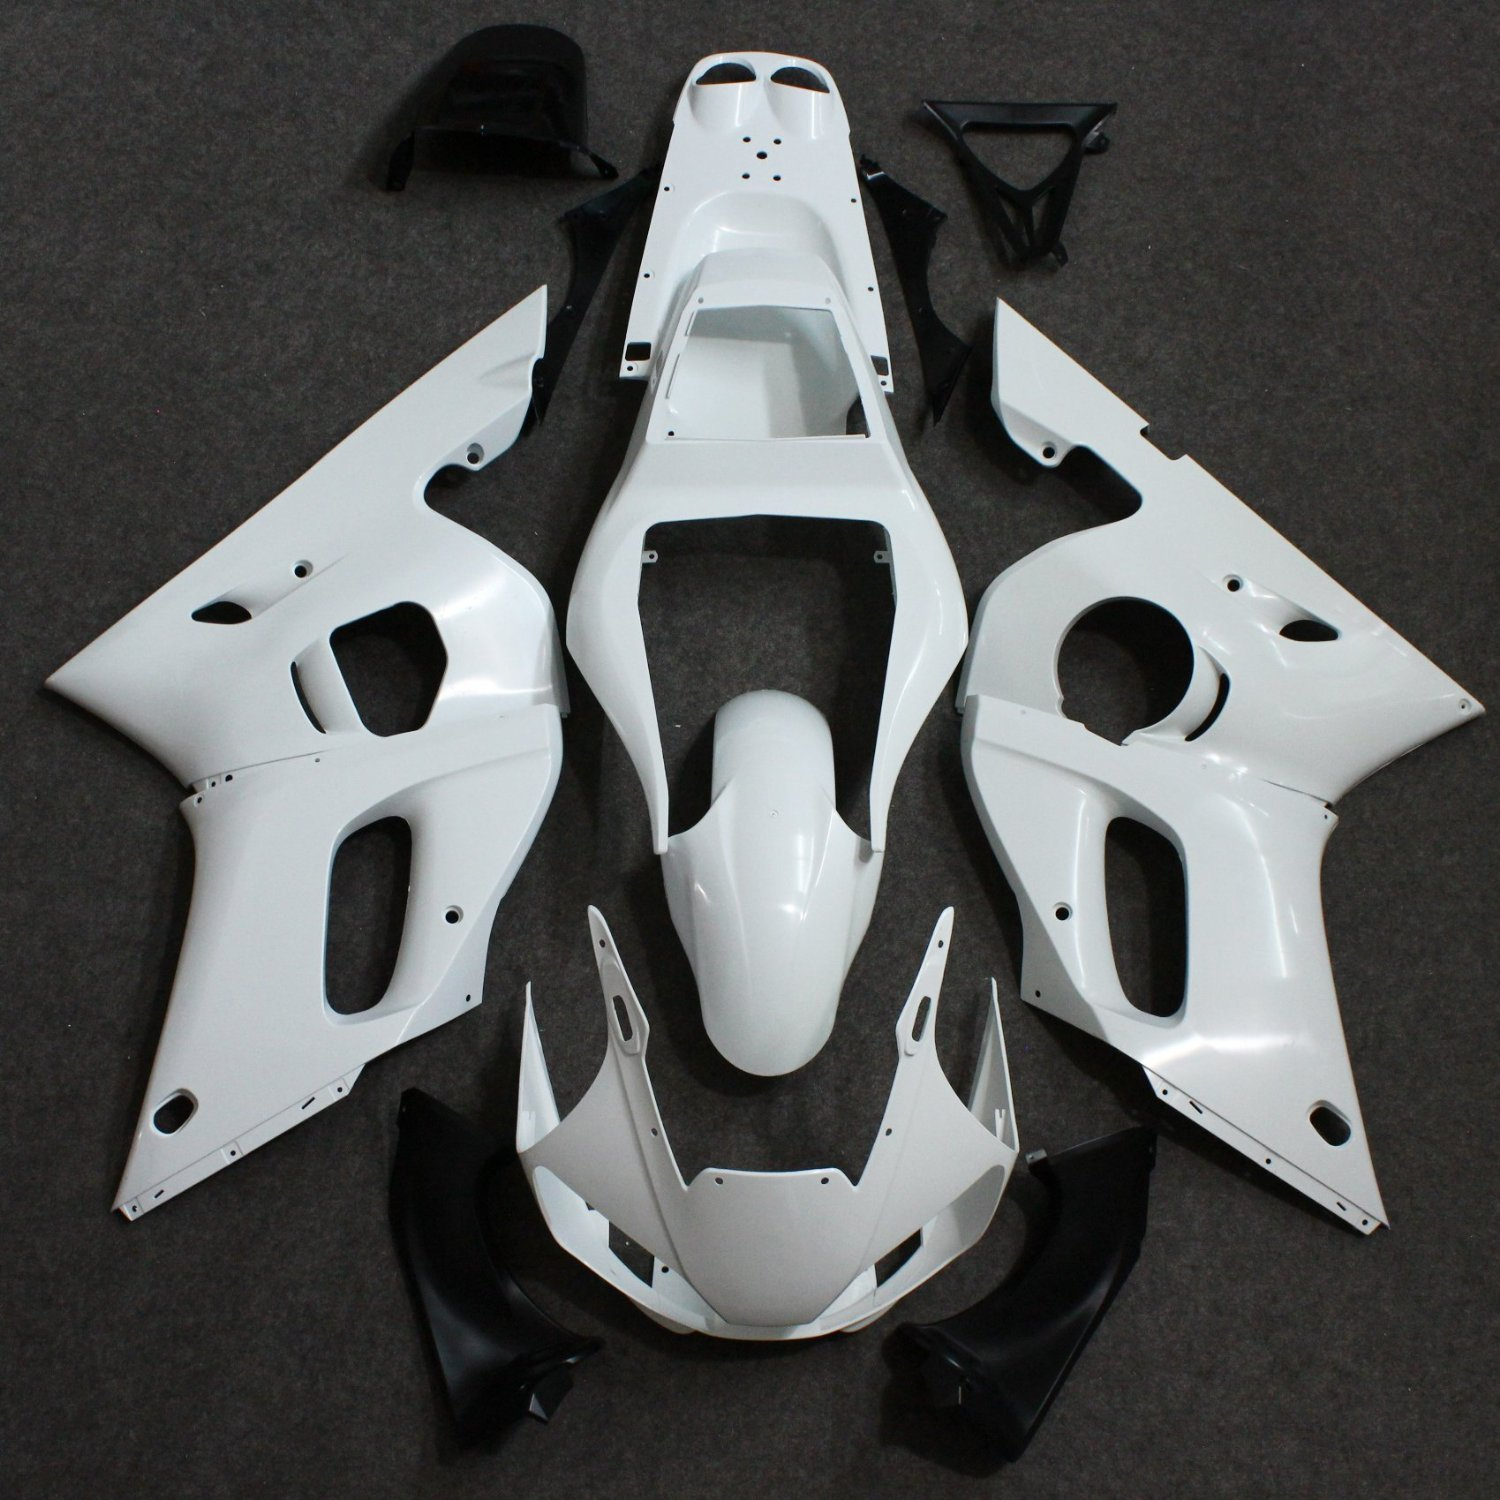 Motorcycle Unpainted Fairing Kit for Yamaha YZF R6  YZF-R6 1998-2002 1999 2000 Fairing Bodywork Kits 6 colors cnc adjustable motorcycle brake clutch levers for yamaha yzf r6 yzfr6 1999 2004 2005 2016 2017 logo yzf r6 lever